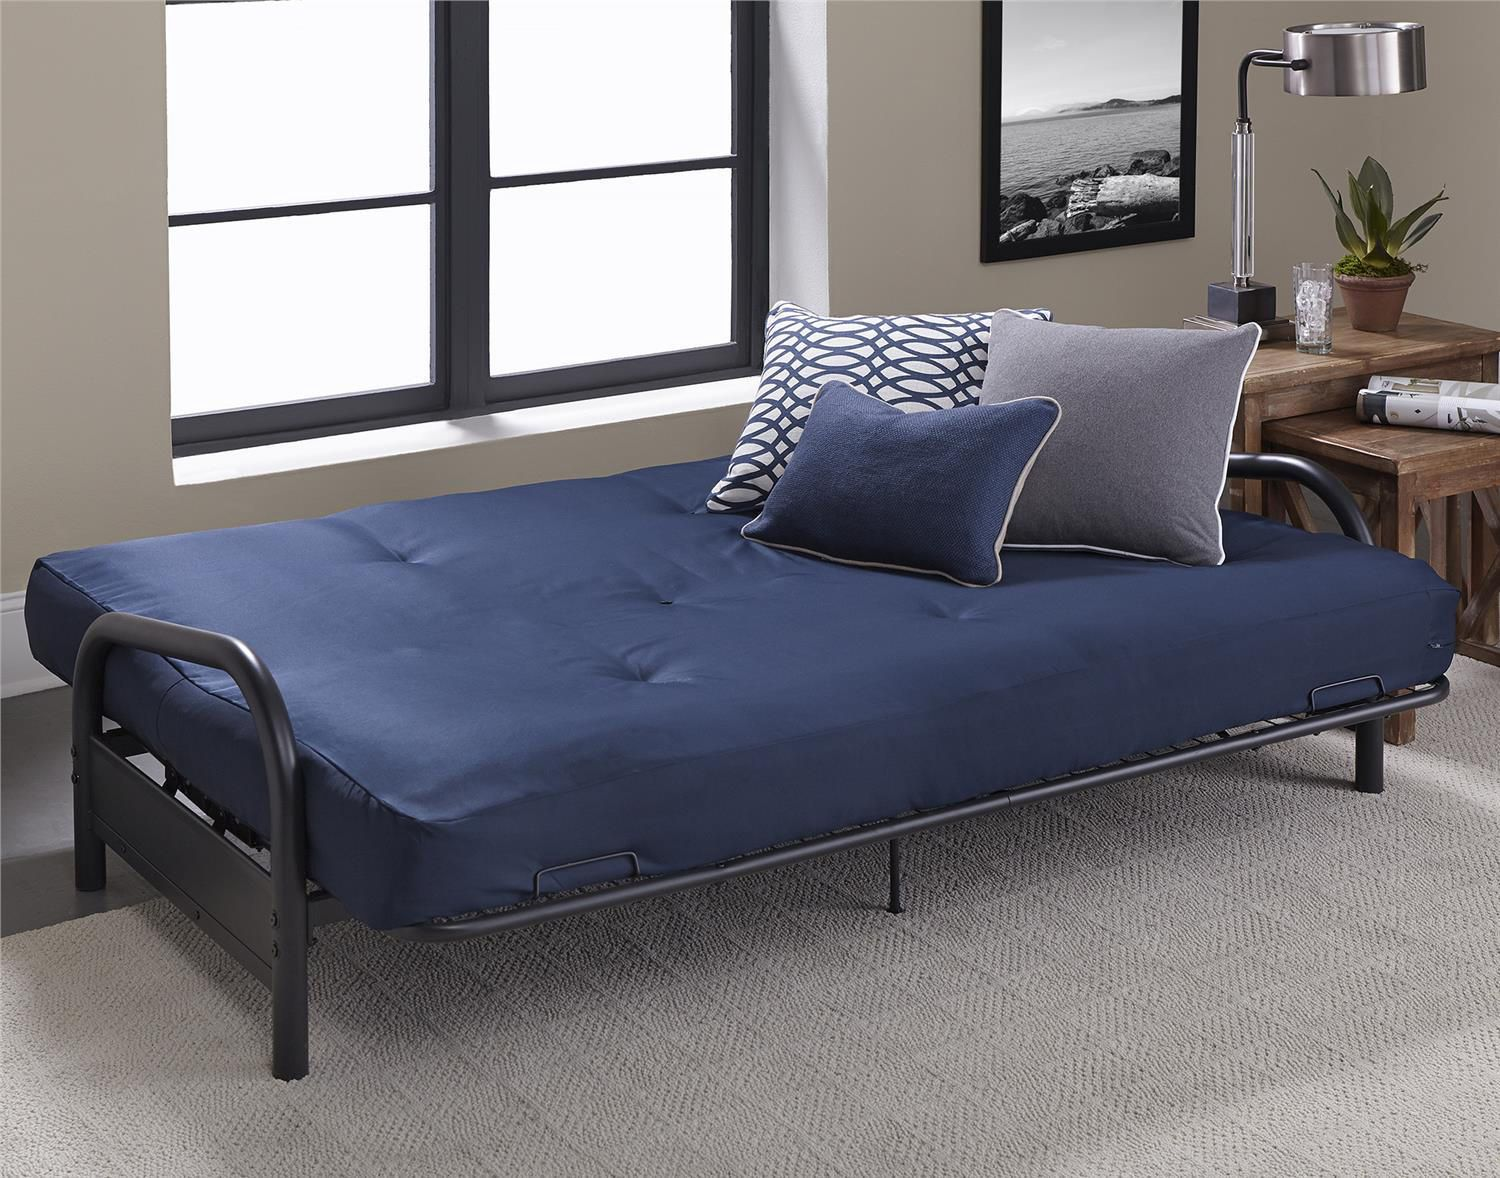 Image of: Popular Cheap Futon Mattress Ideas